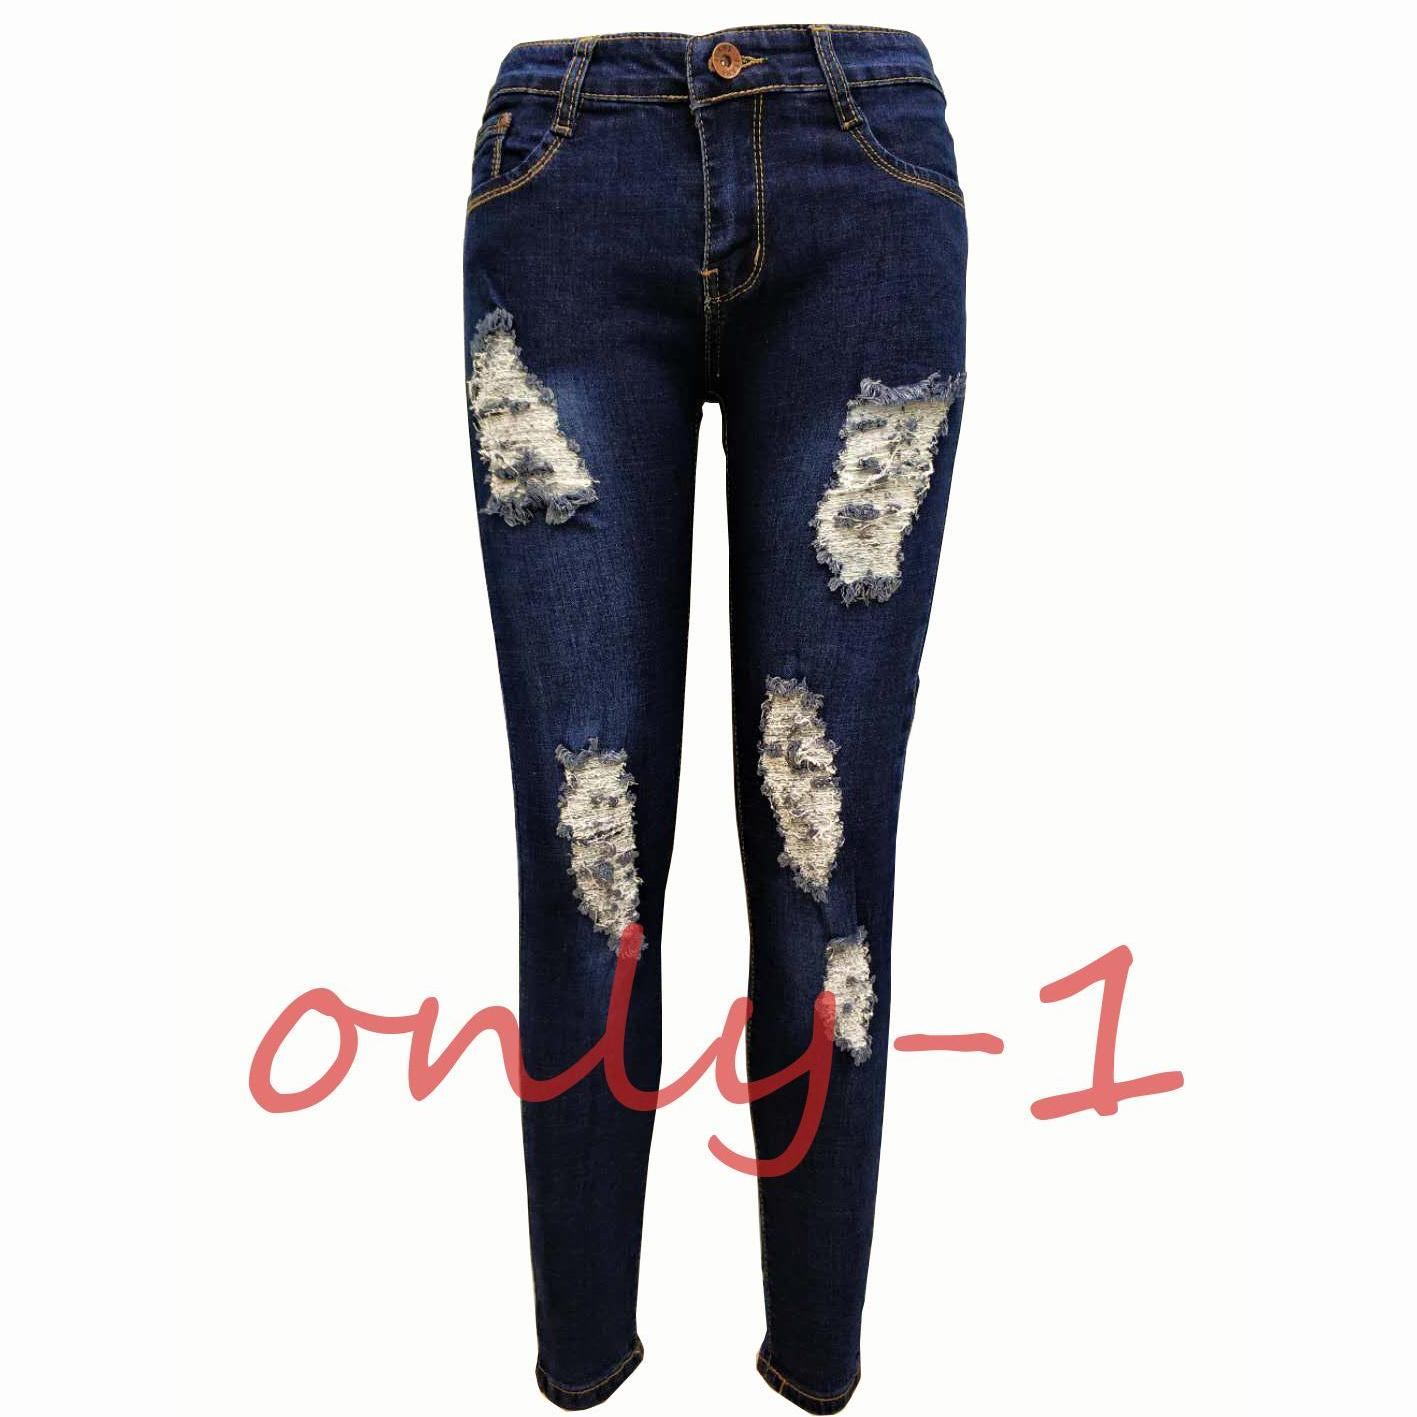 1a3279db8b46 Pants for Women for sale - Womens Fashion Pants Online Deals ...